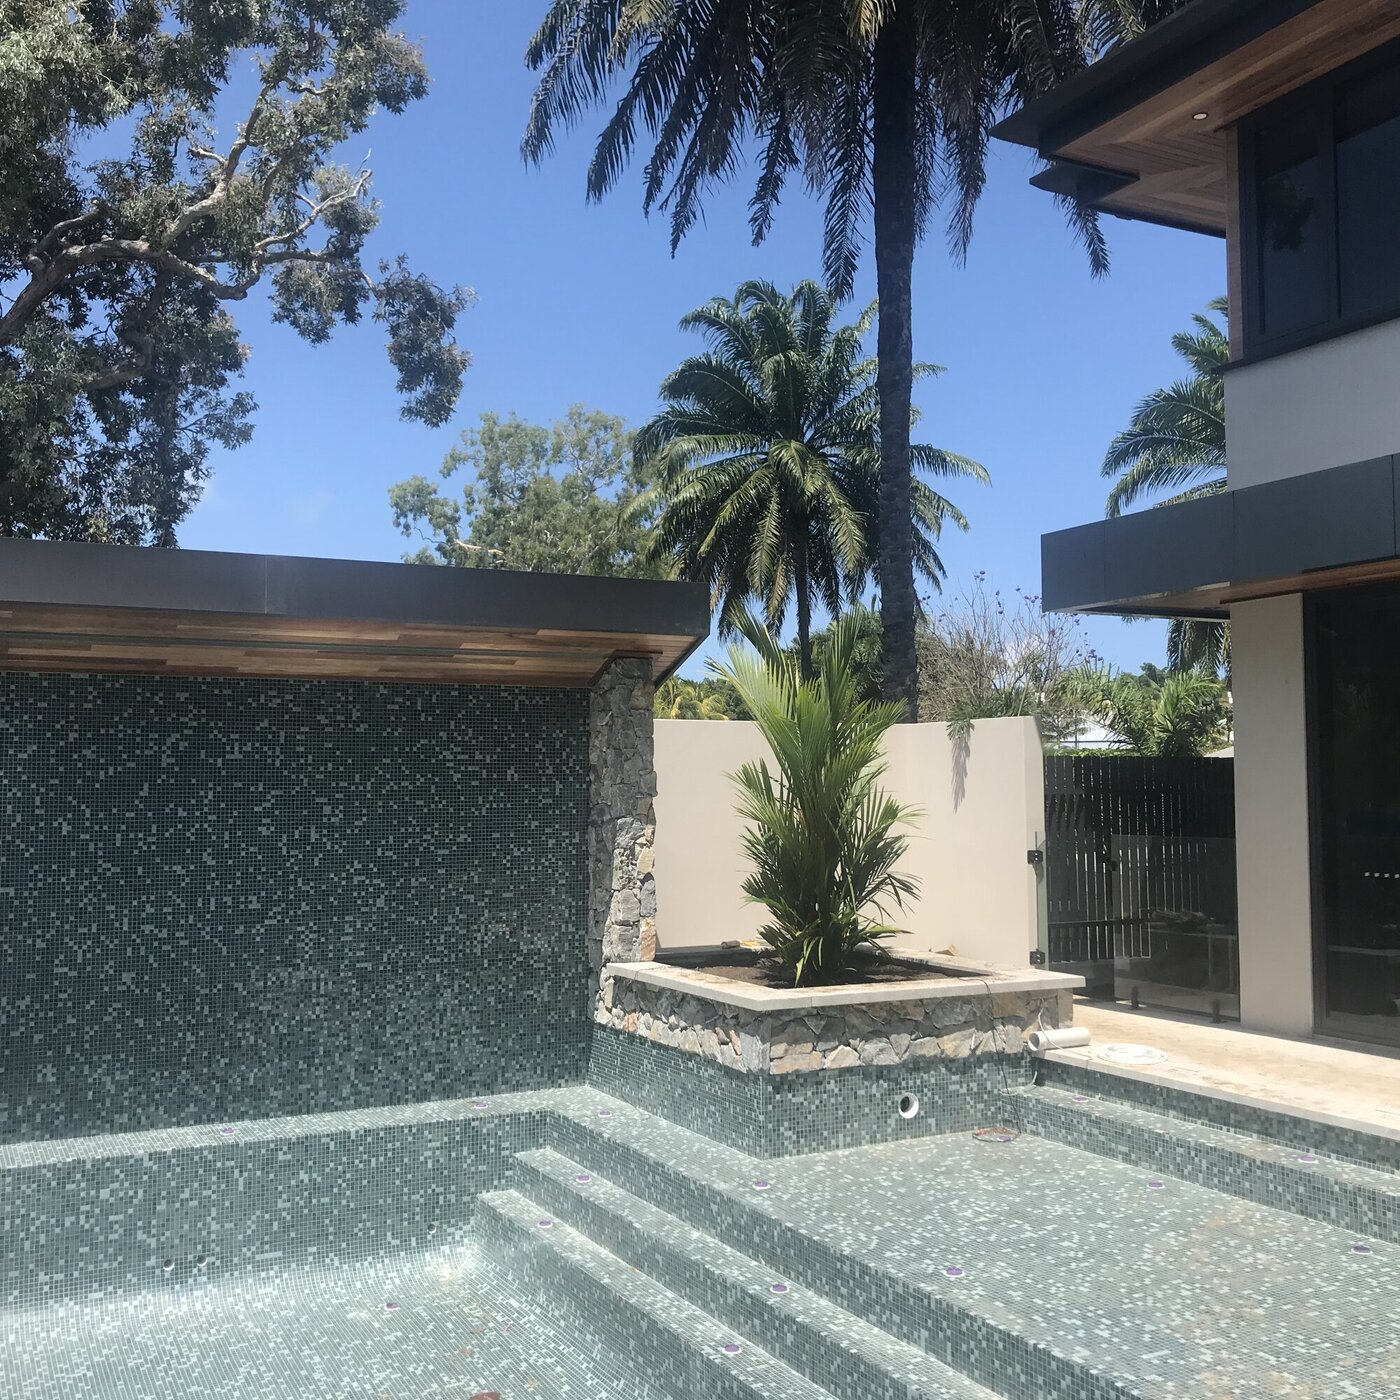 Tiled pool with water feature construction underway